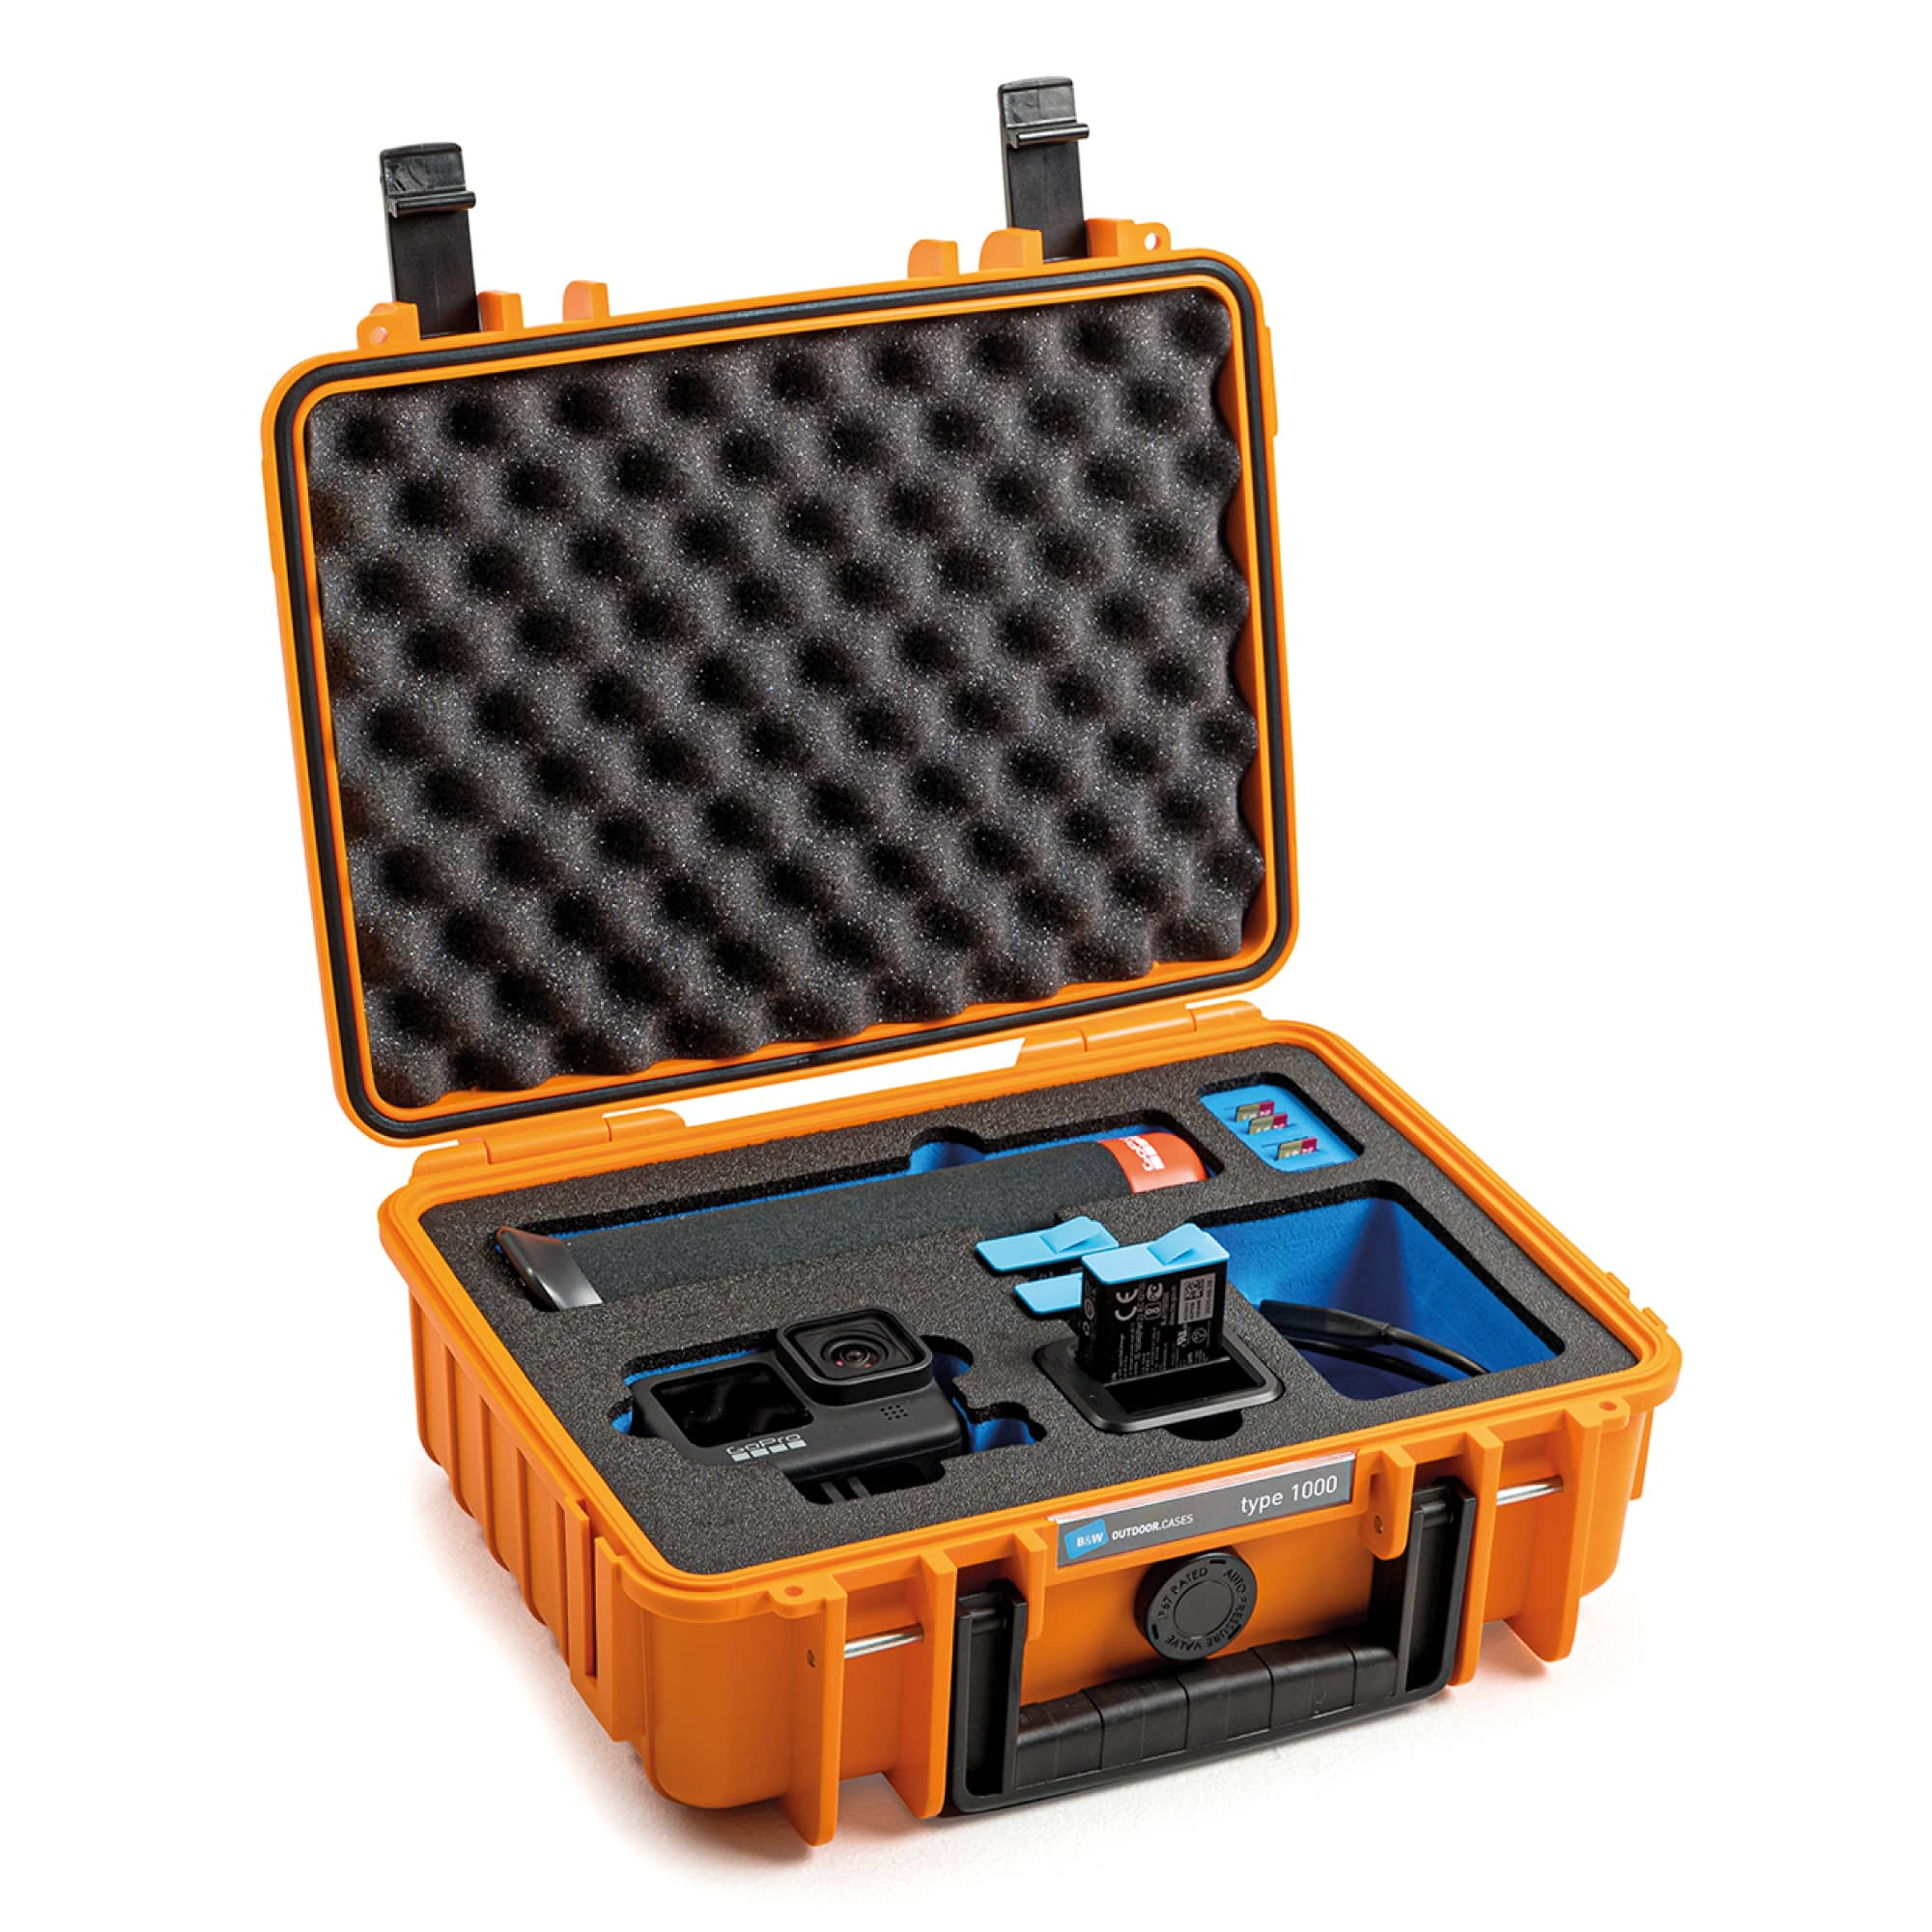 B&W Special Case Tye 1000 with 3D foam for GoPro 9 and 10